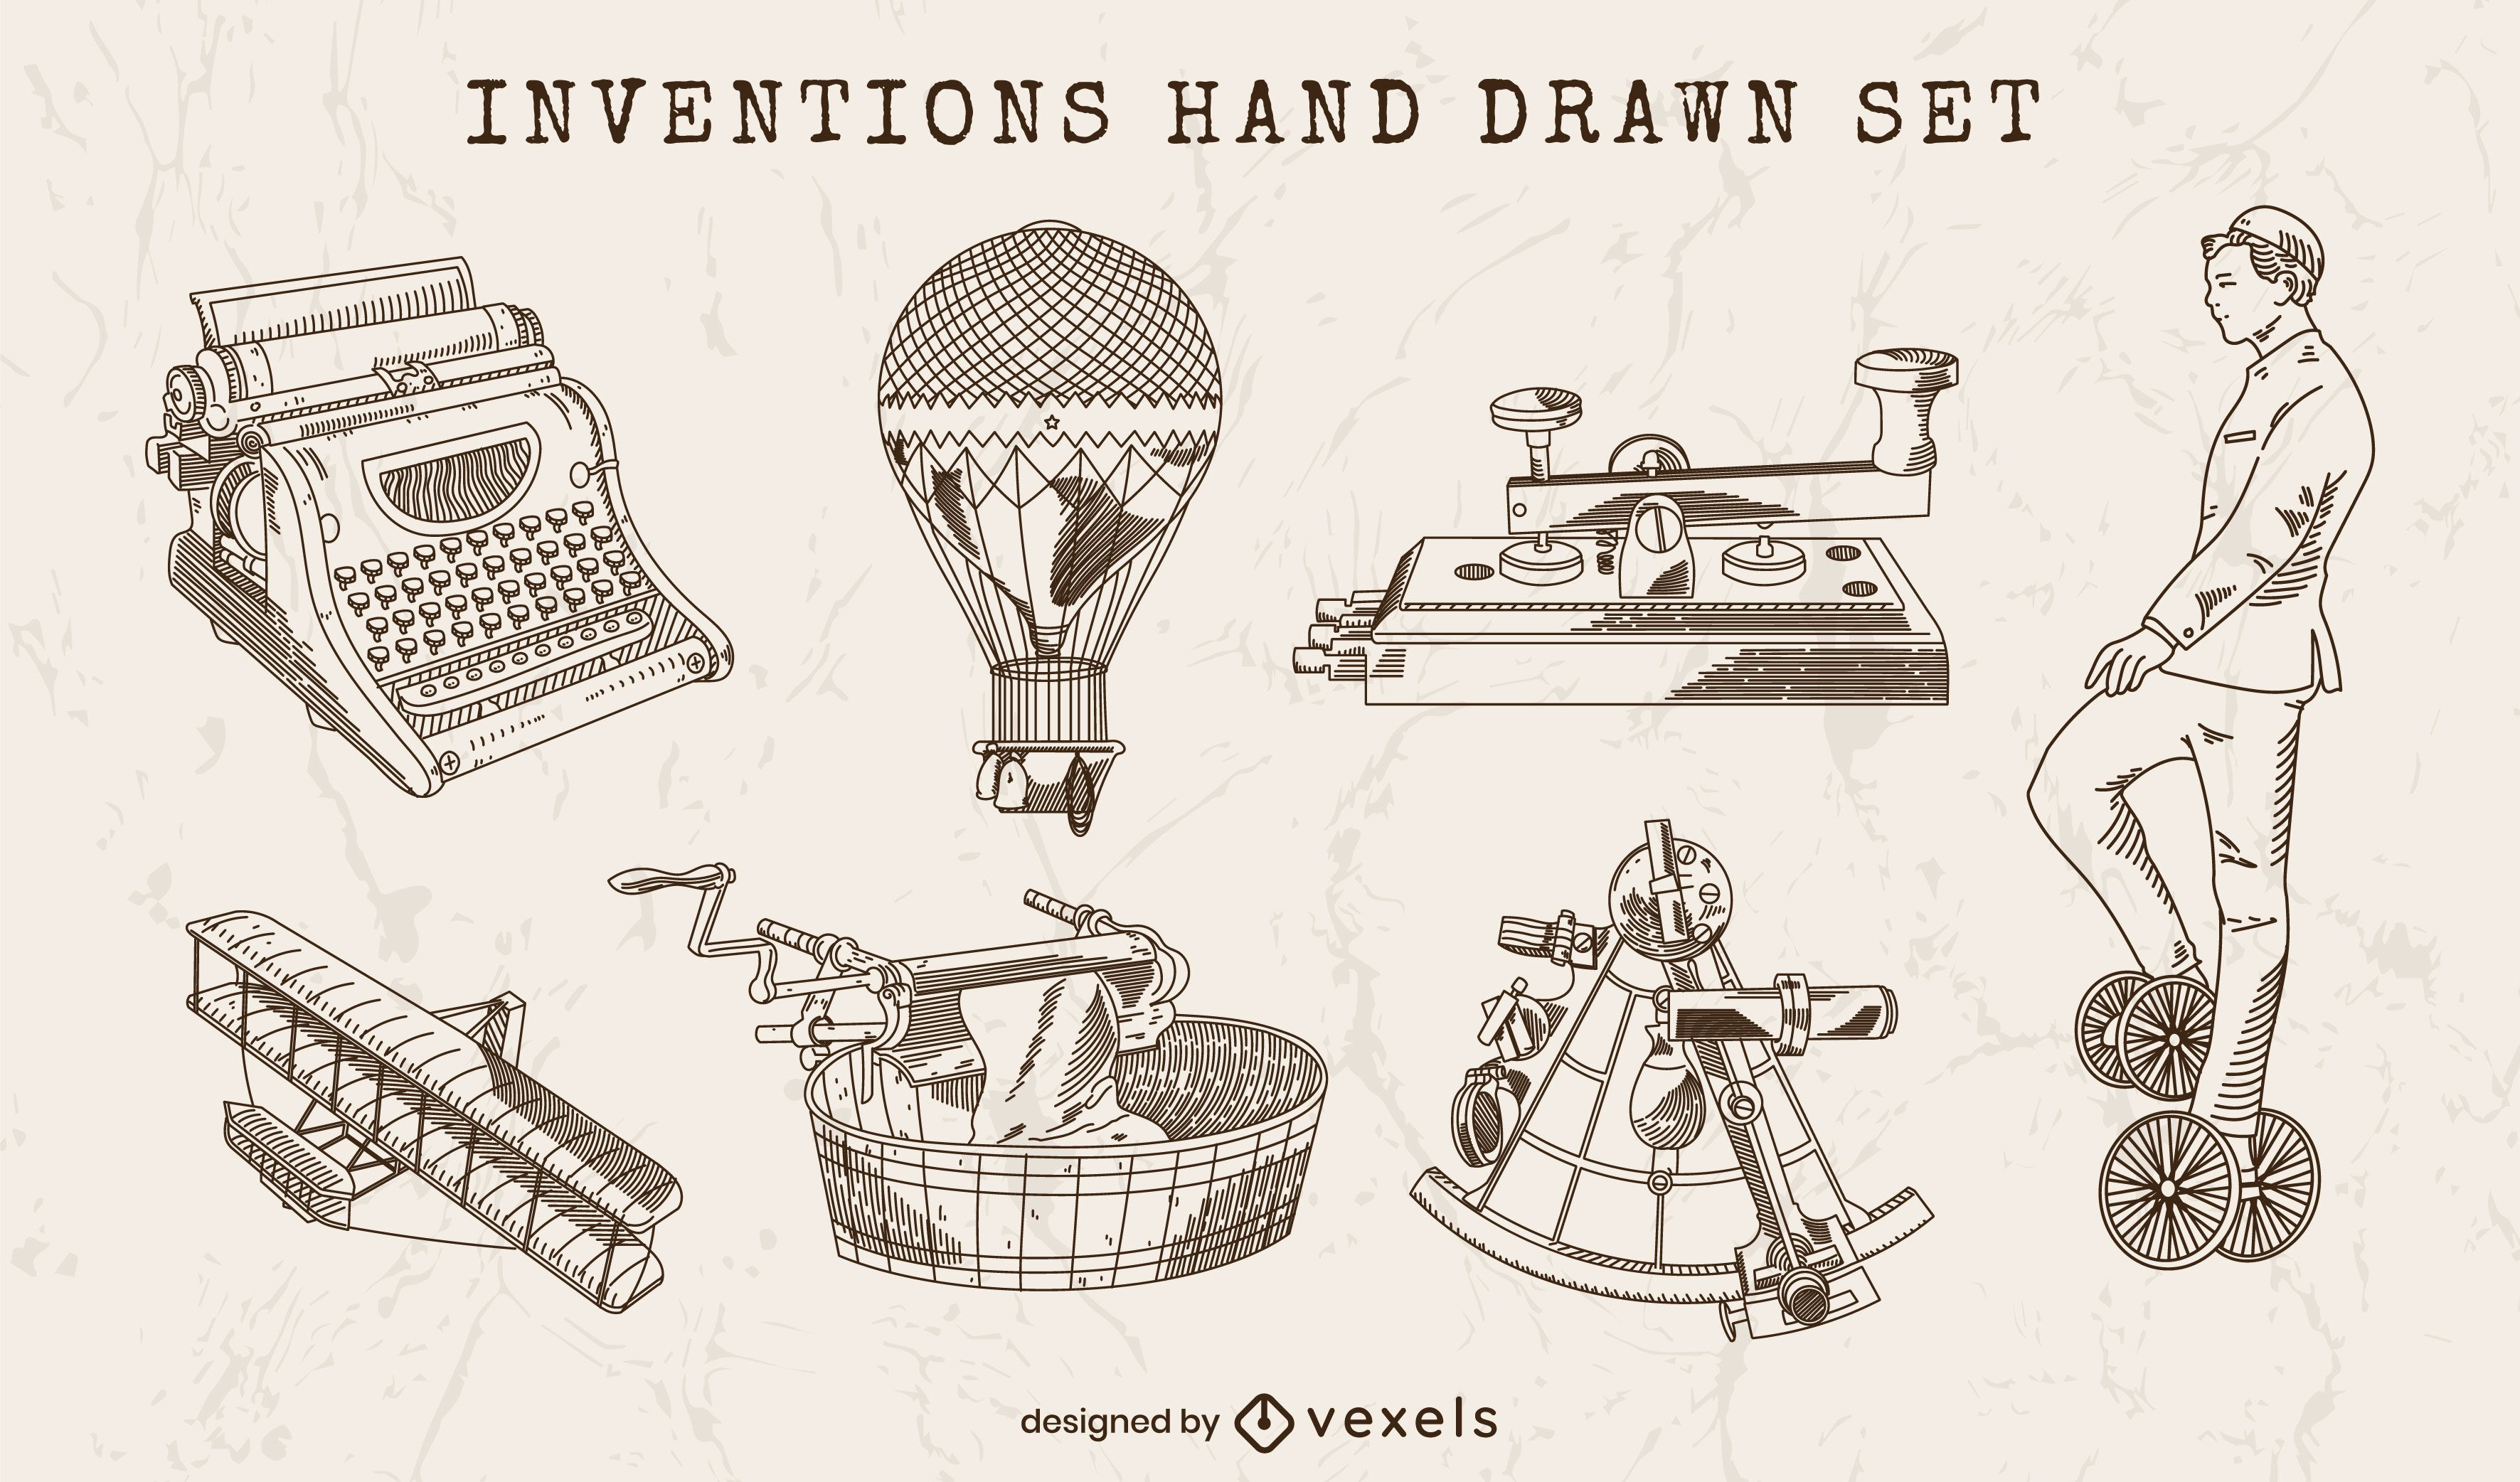 Inventions hand drawn set of elements